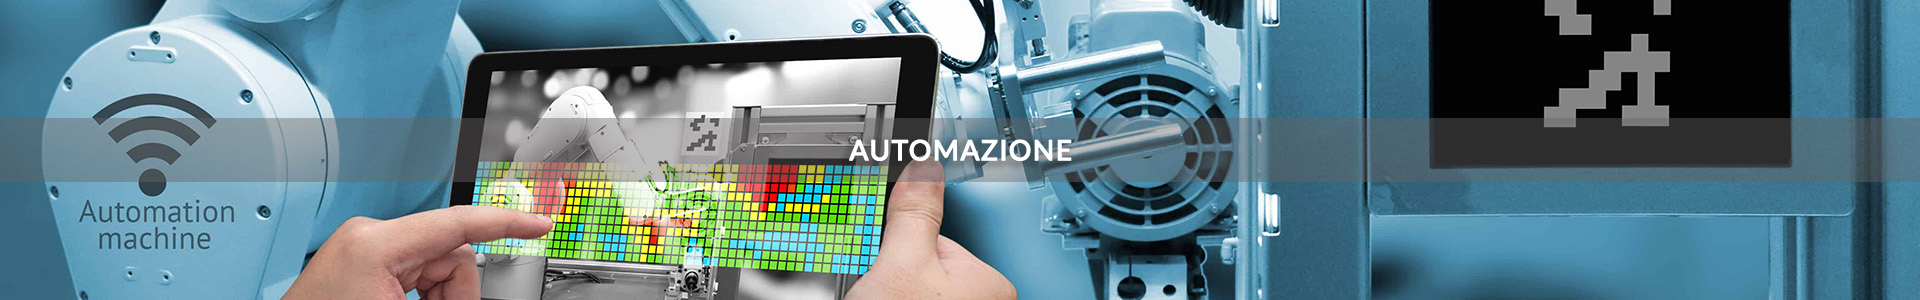 Automazione Industriale - Technology BSA